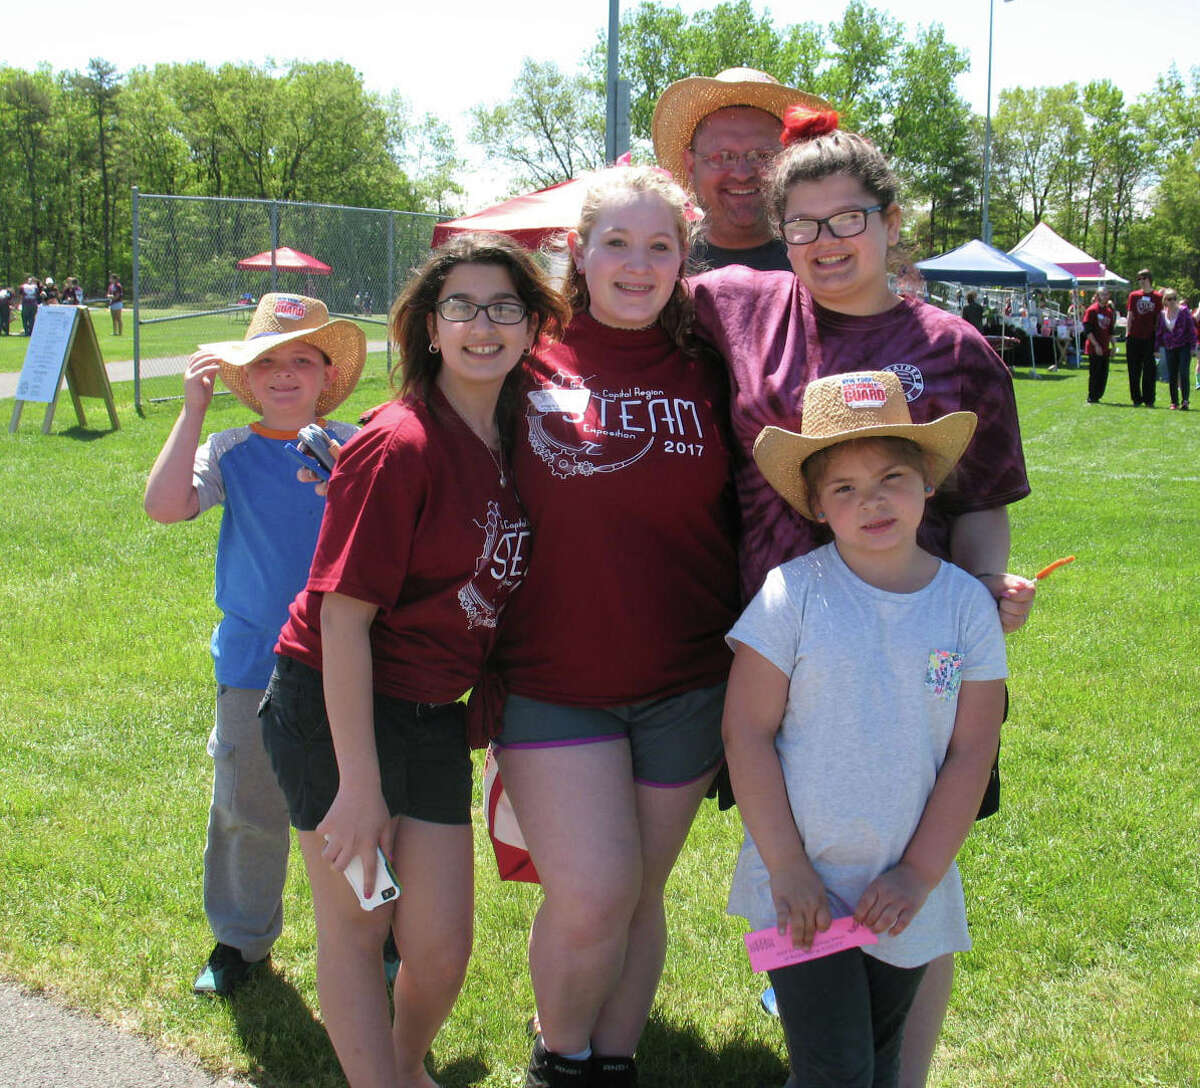 Were you Seen at the Colonie Central High School's Raiderfest community event at the school on May 20, 2017?